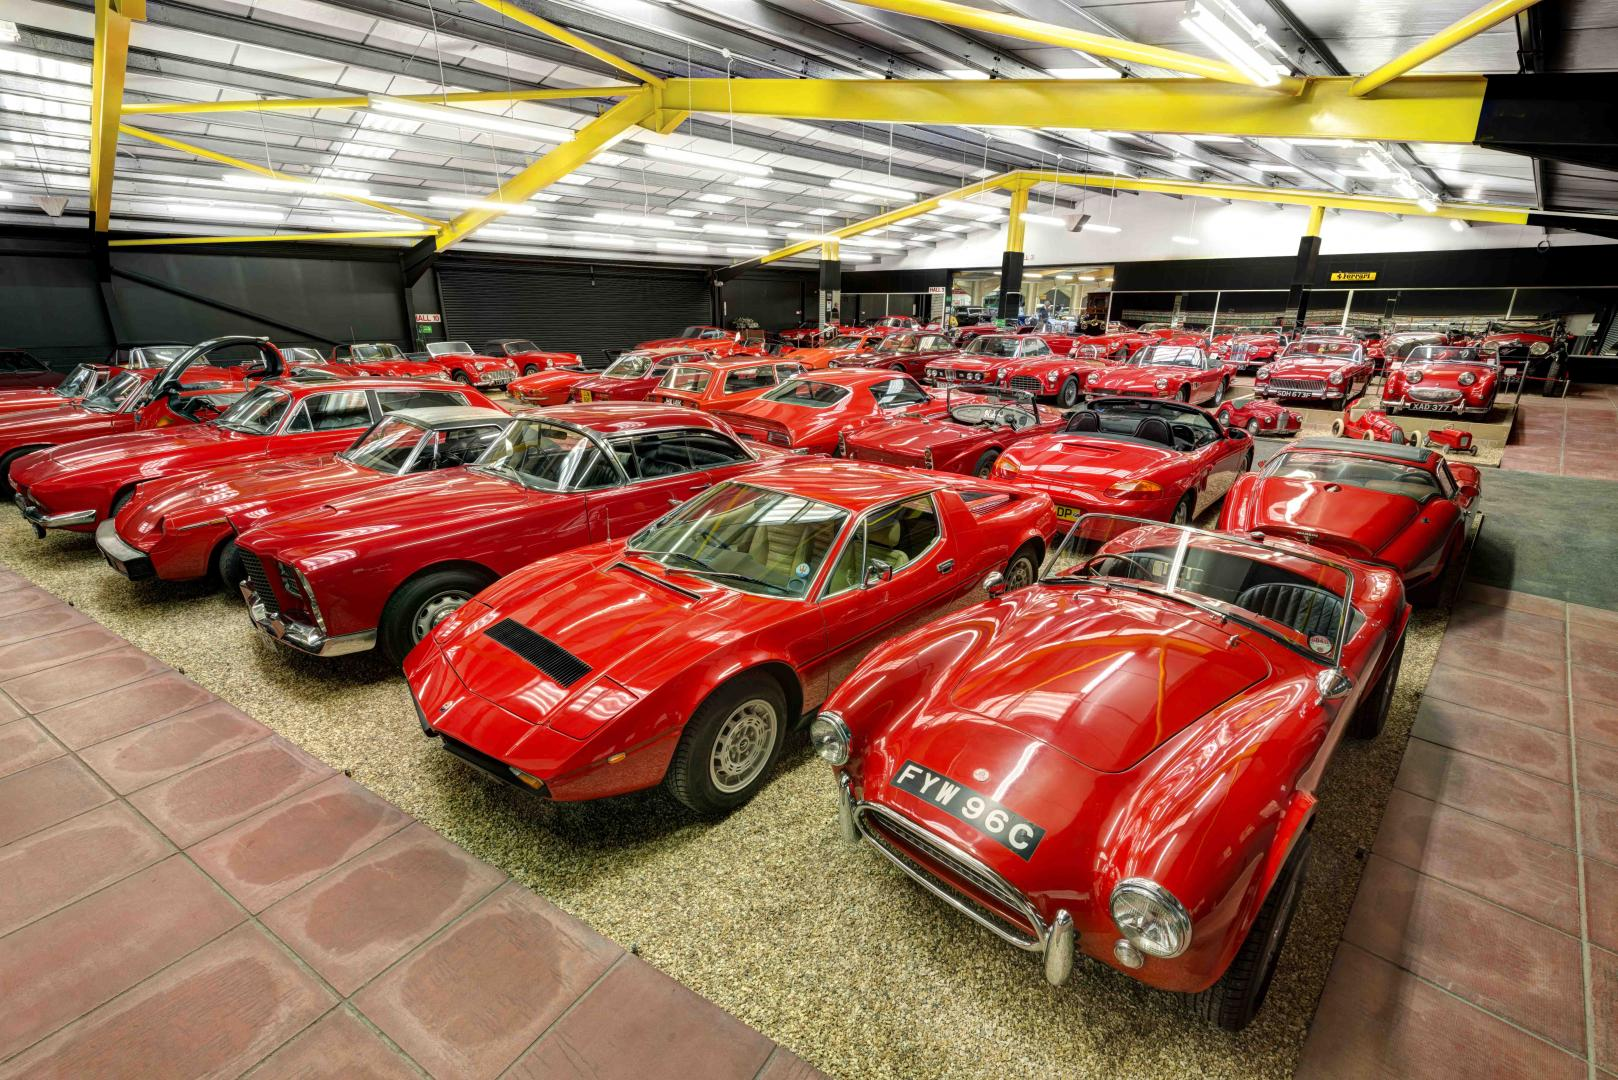 Take a tour of the Red Room, the crimson jewel of the Haynes Motor Museum